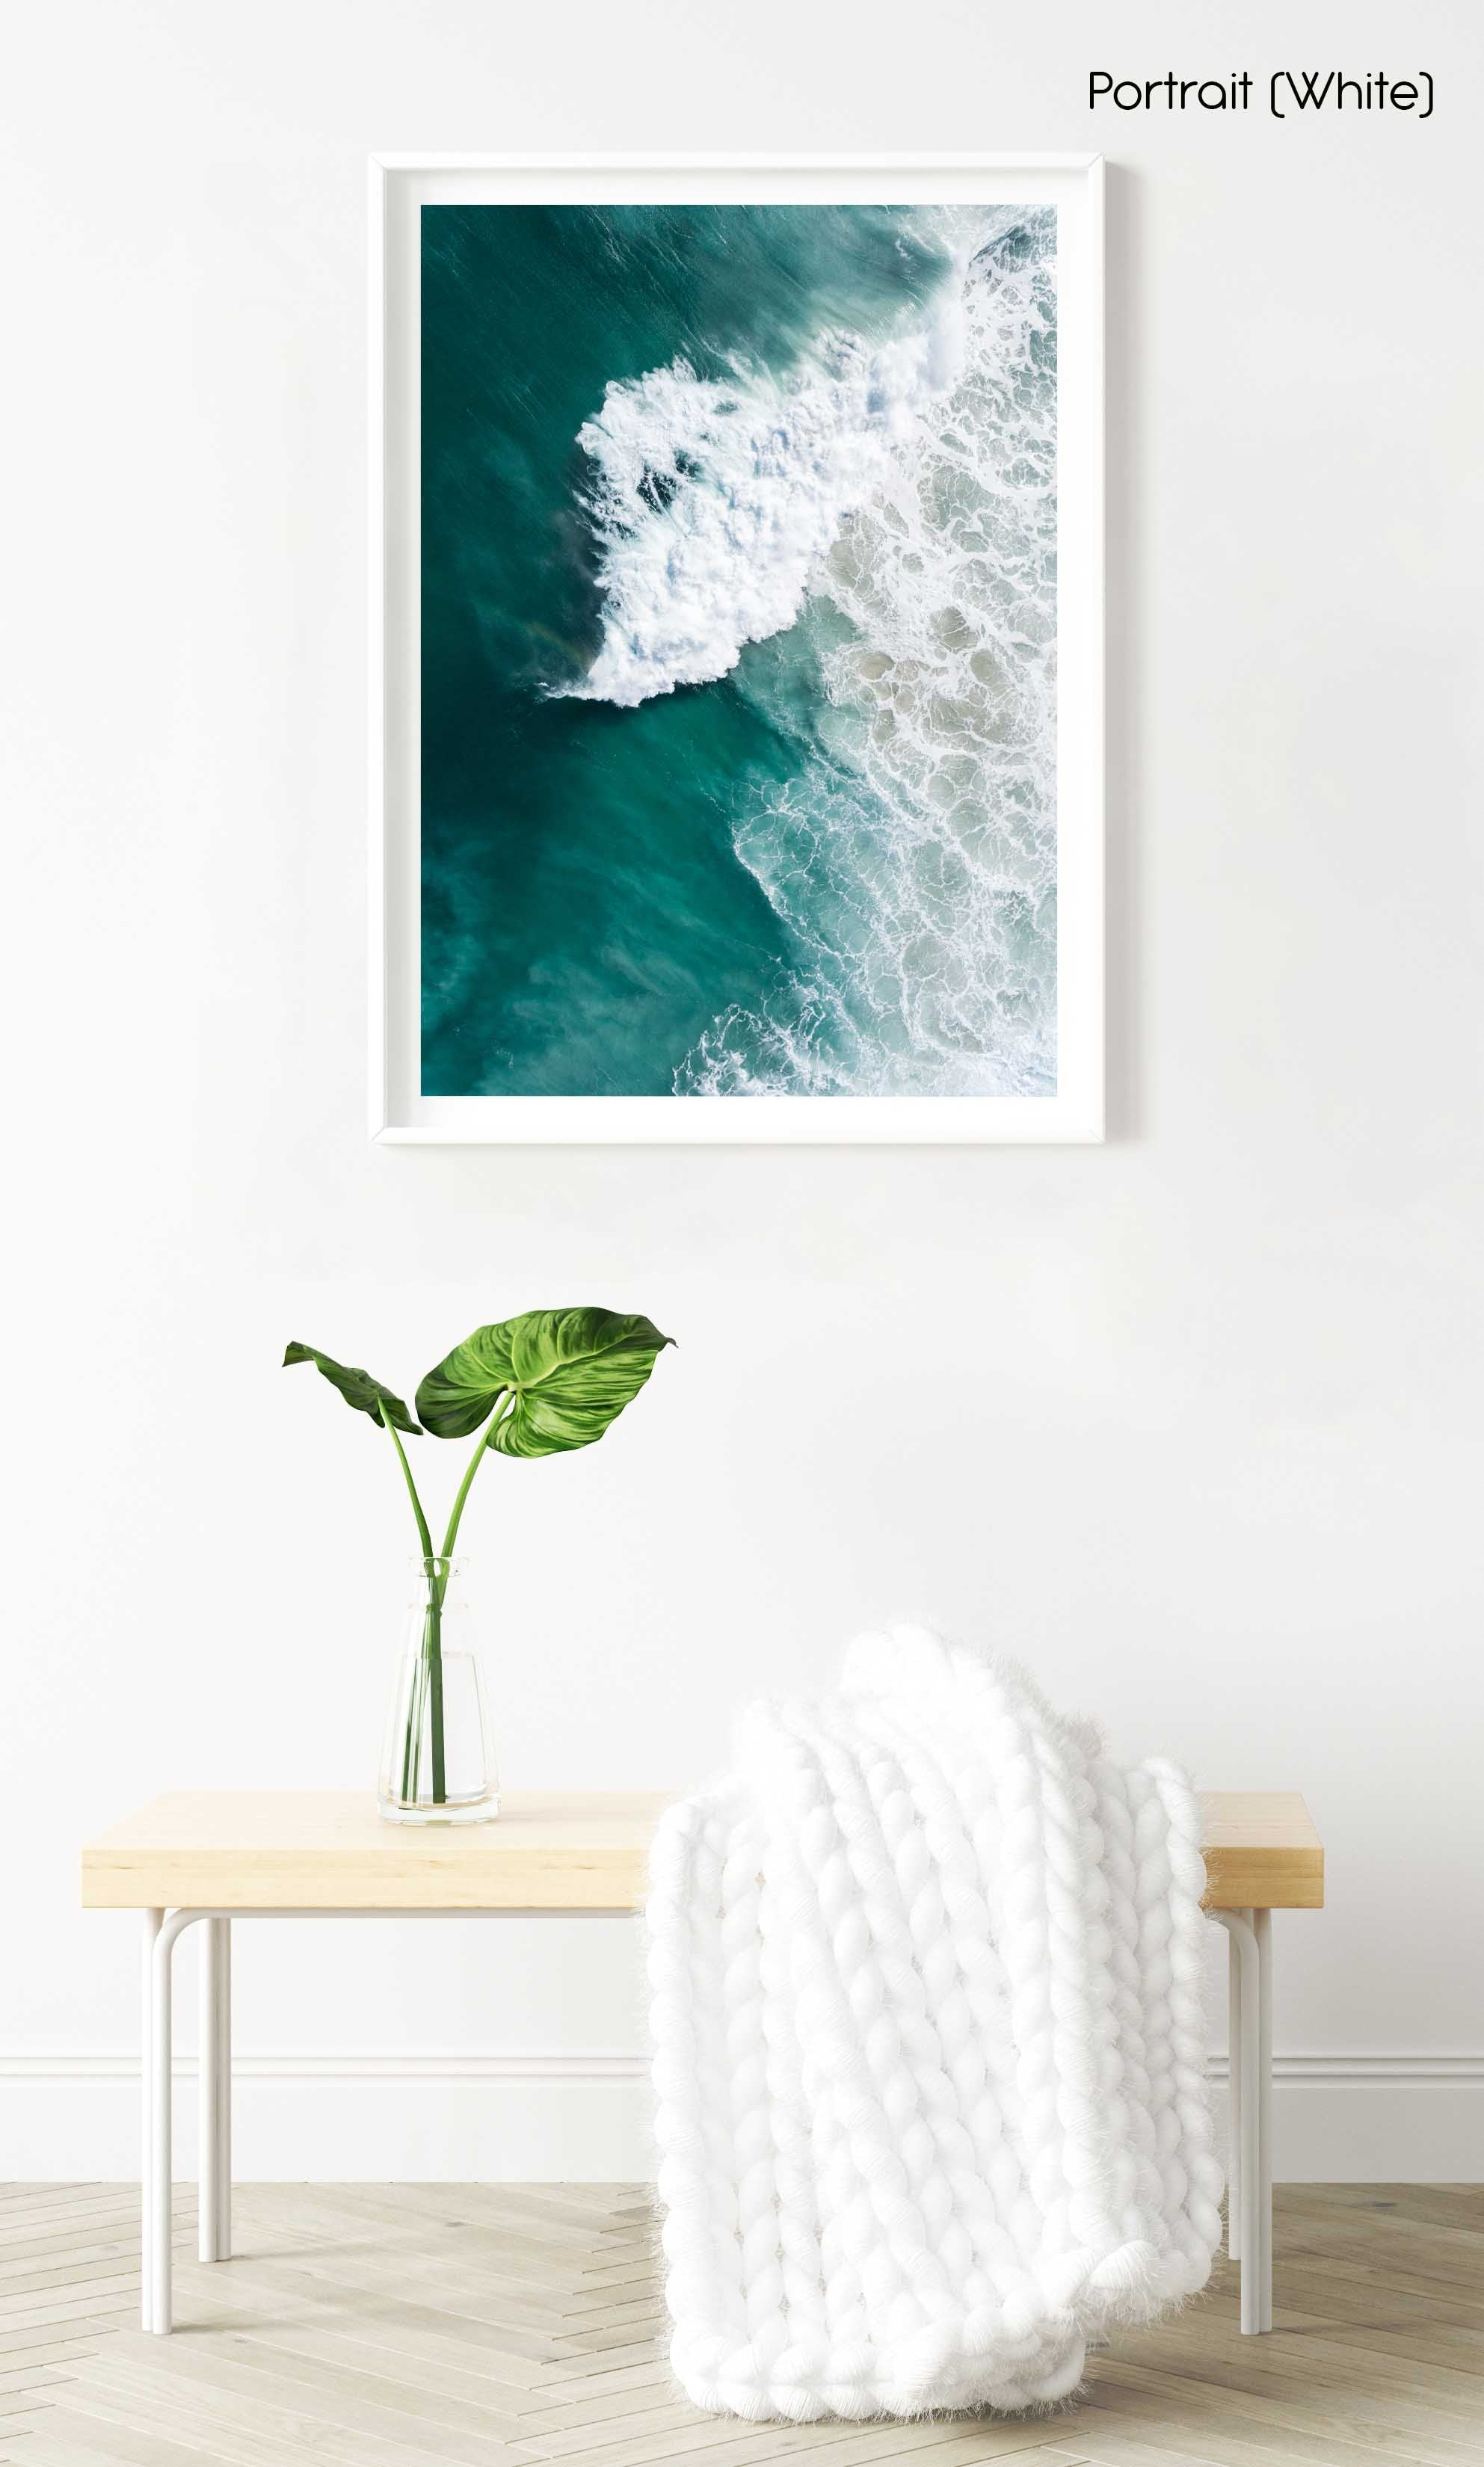 Large wave crashing at Noordhoek beach seen from above in a white fine art frame